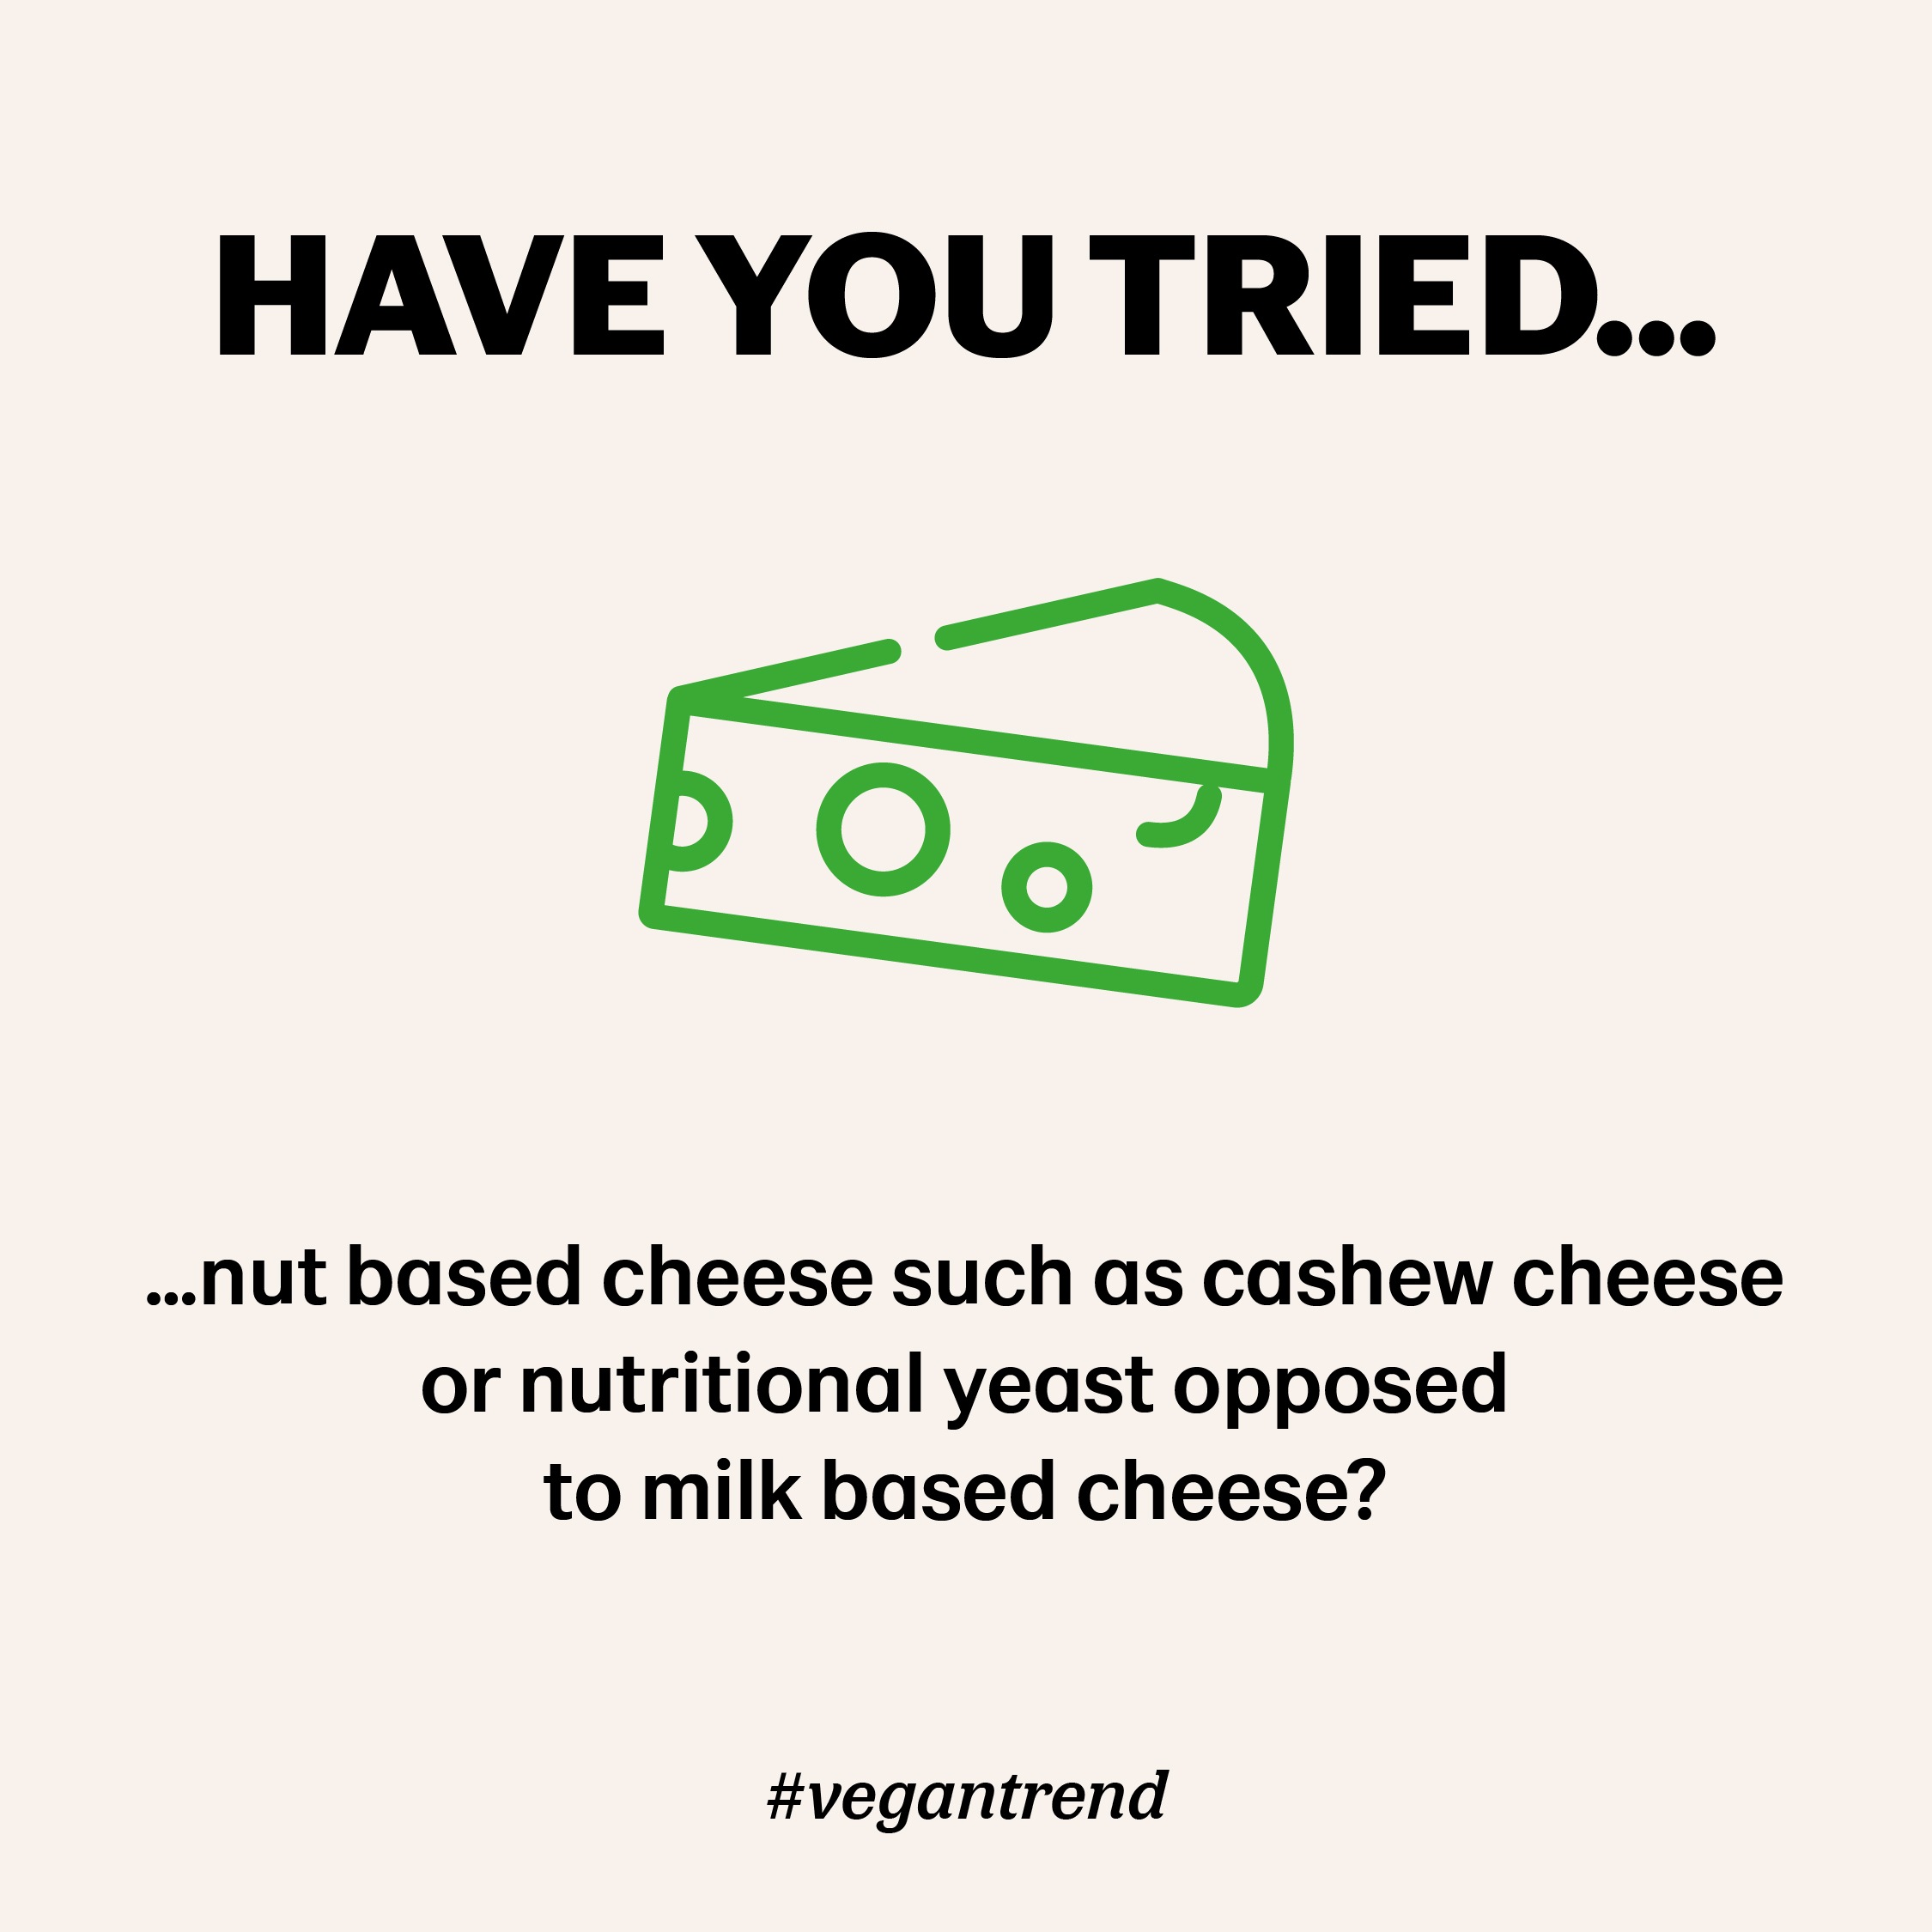 Nut based cheese insteaed of milk based cheese